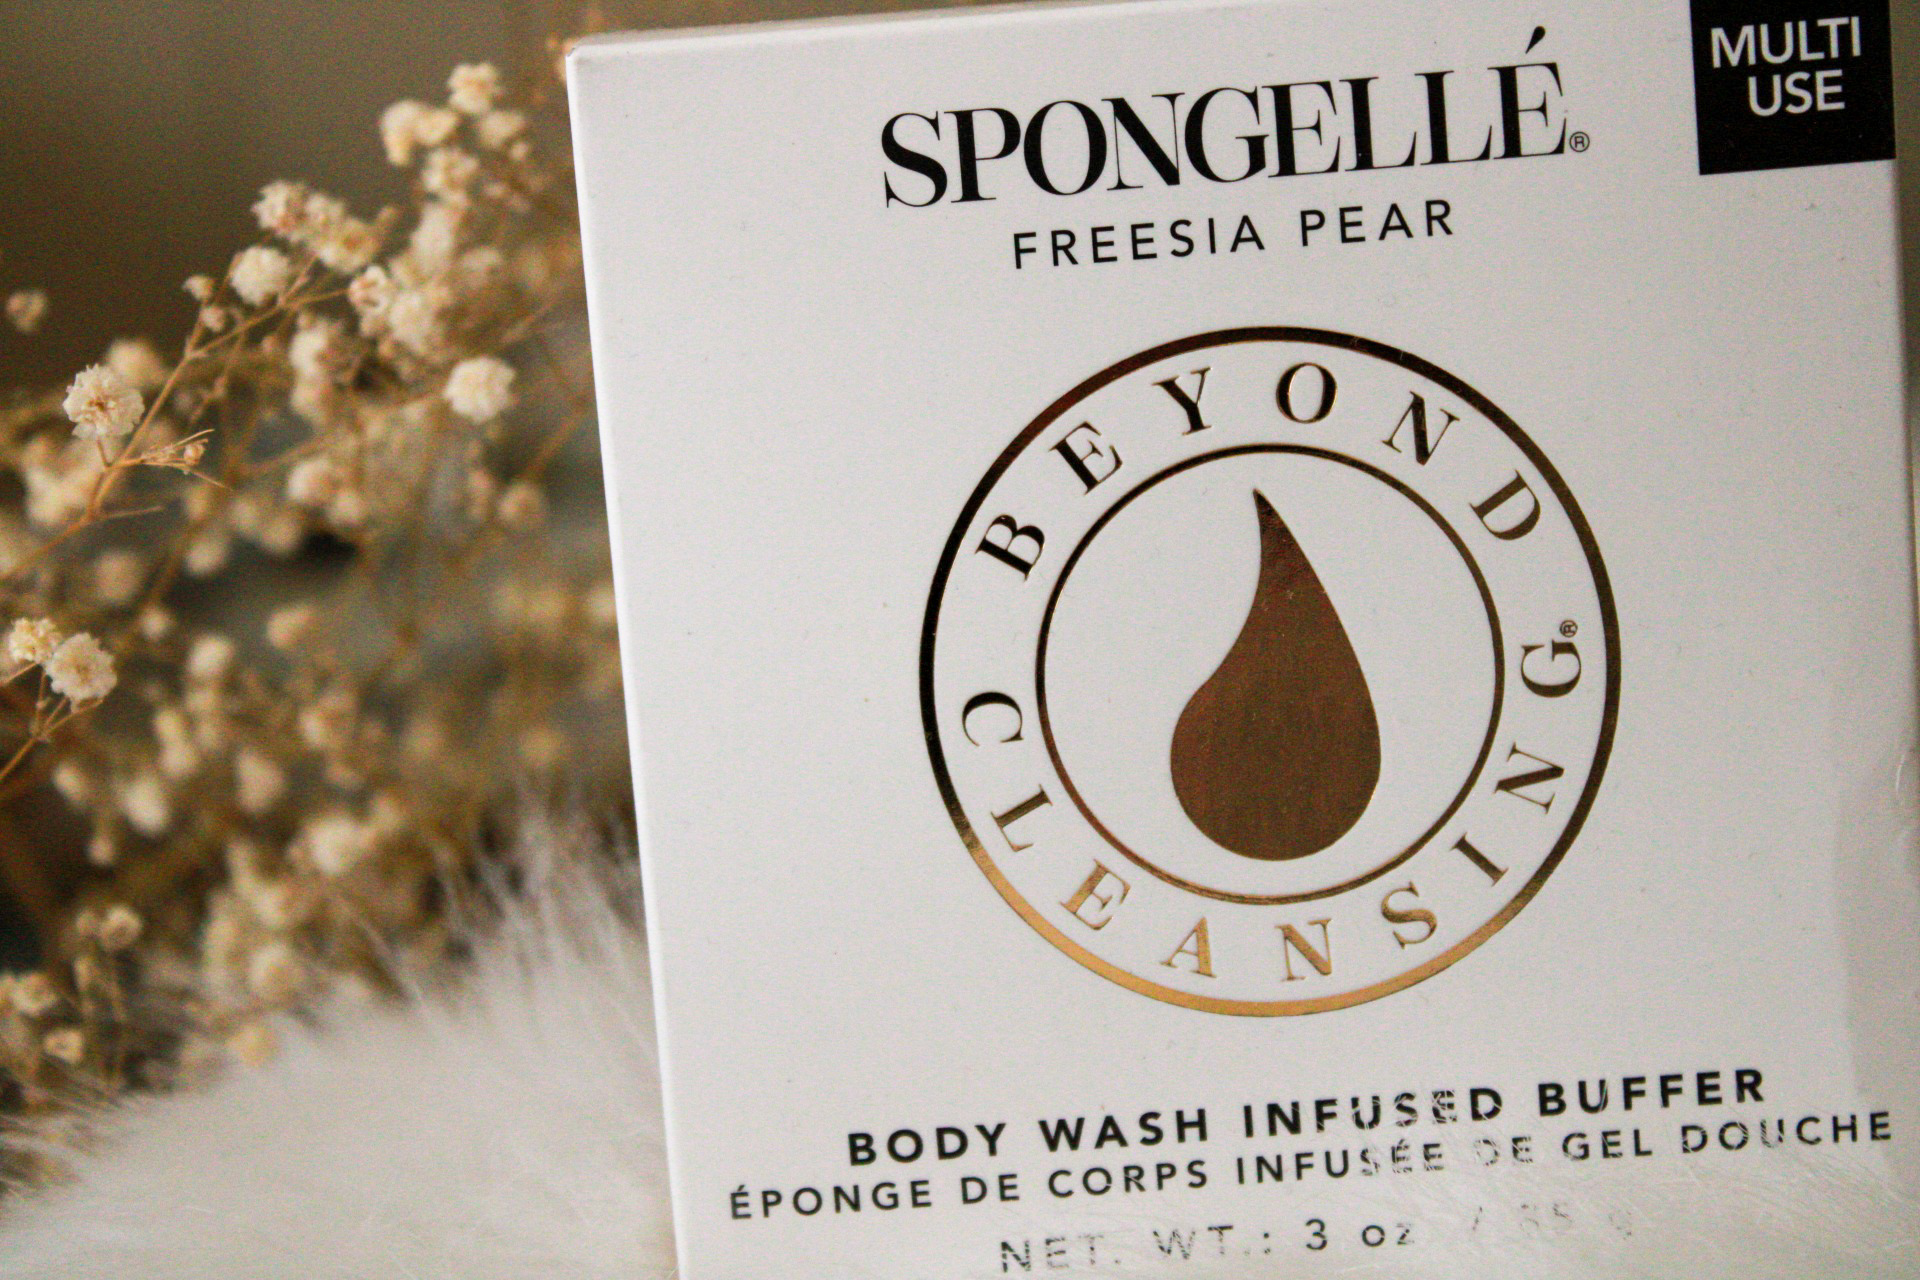 Boxyluxe March 2020 - Spongellé - Freesia Pear